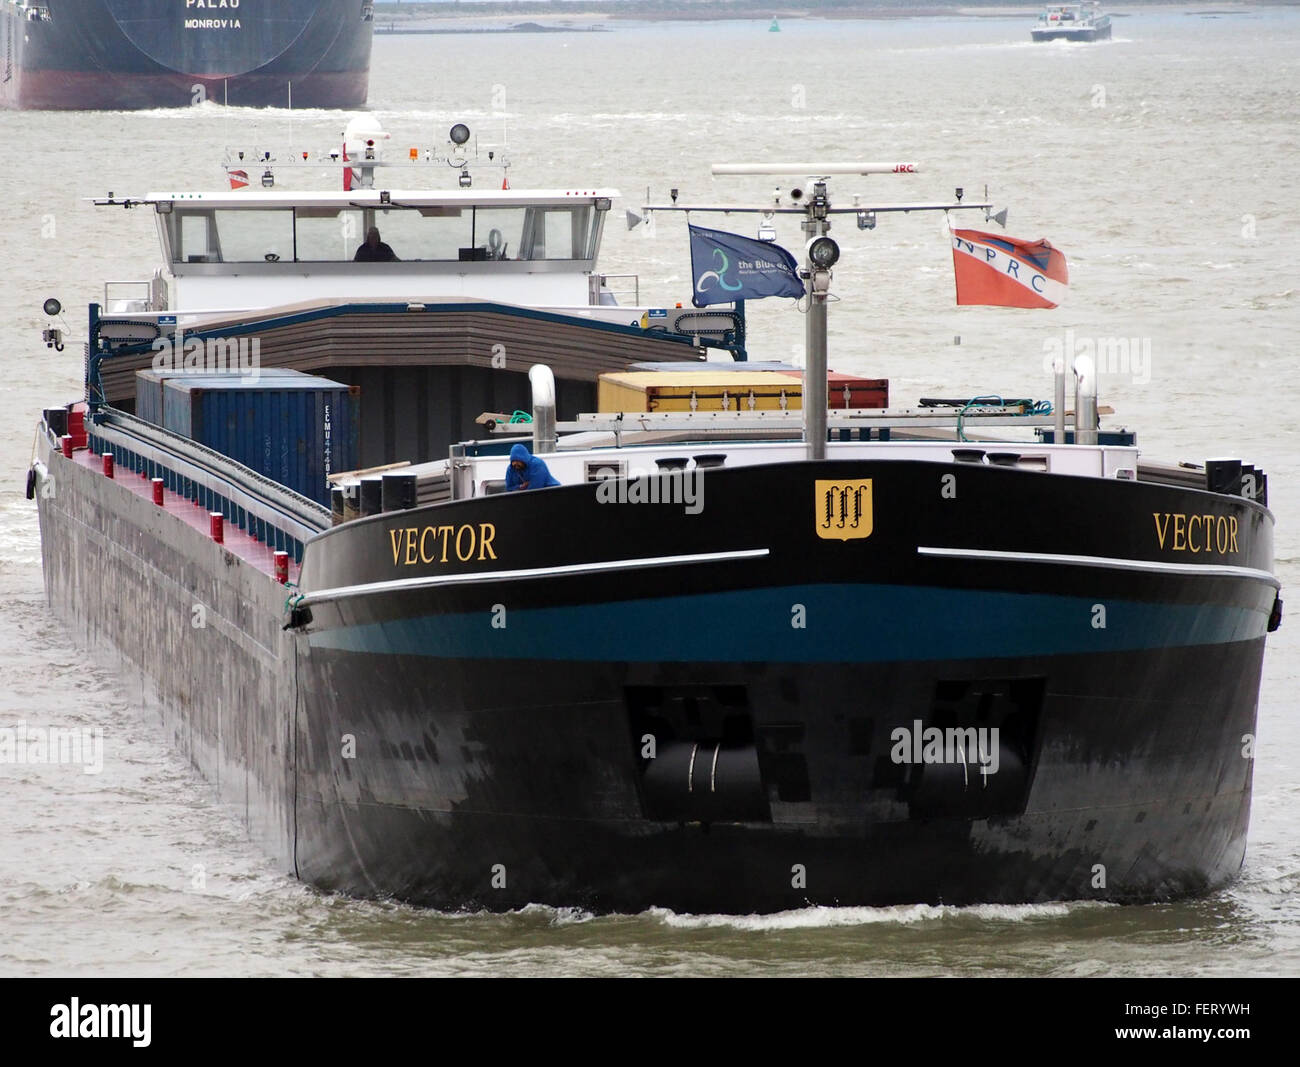 Vector (ship, 2008), ENI 02331015 Port of Antwerp pic4 - Stock Image